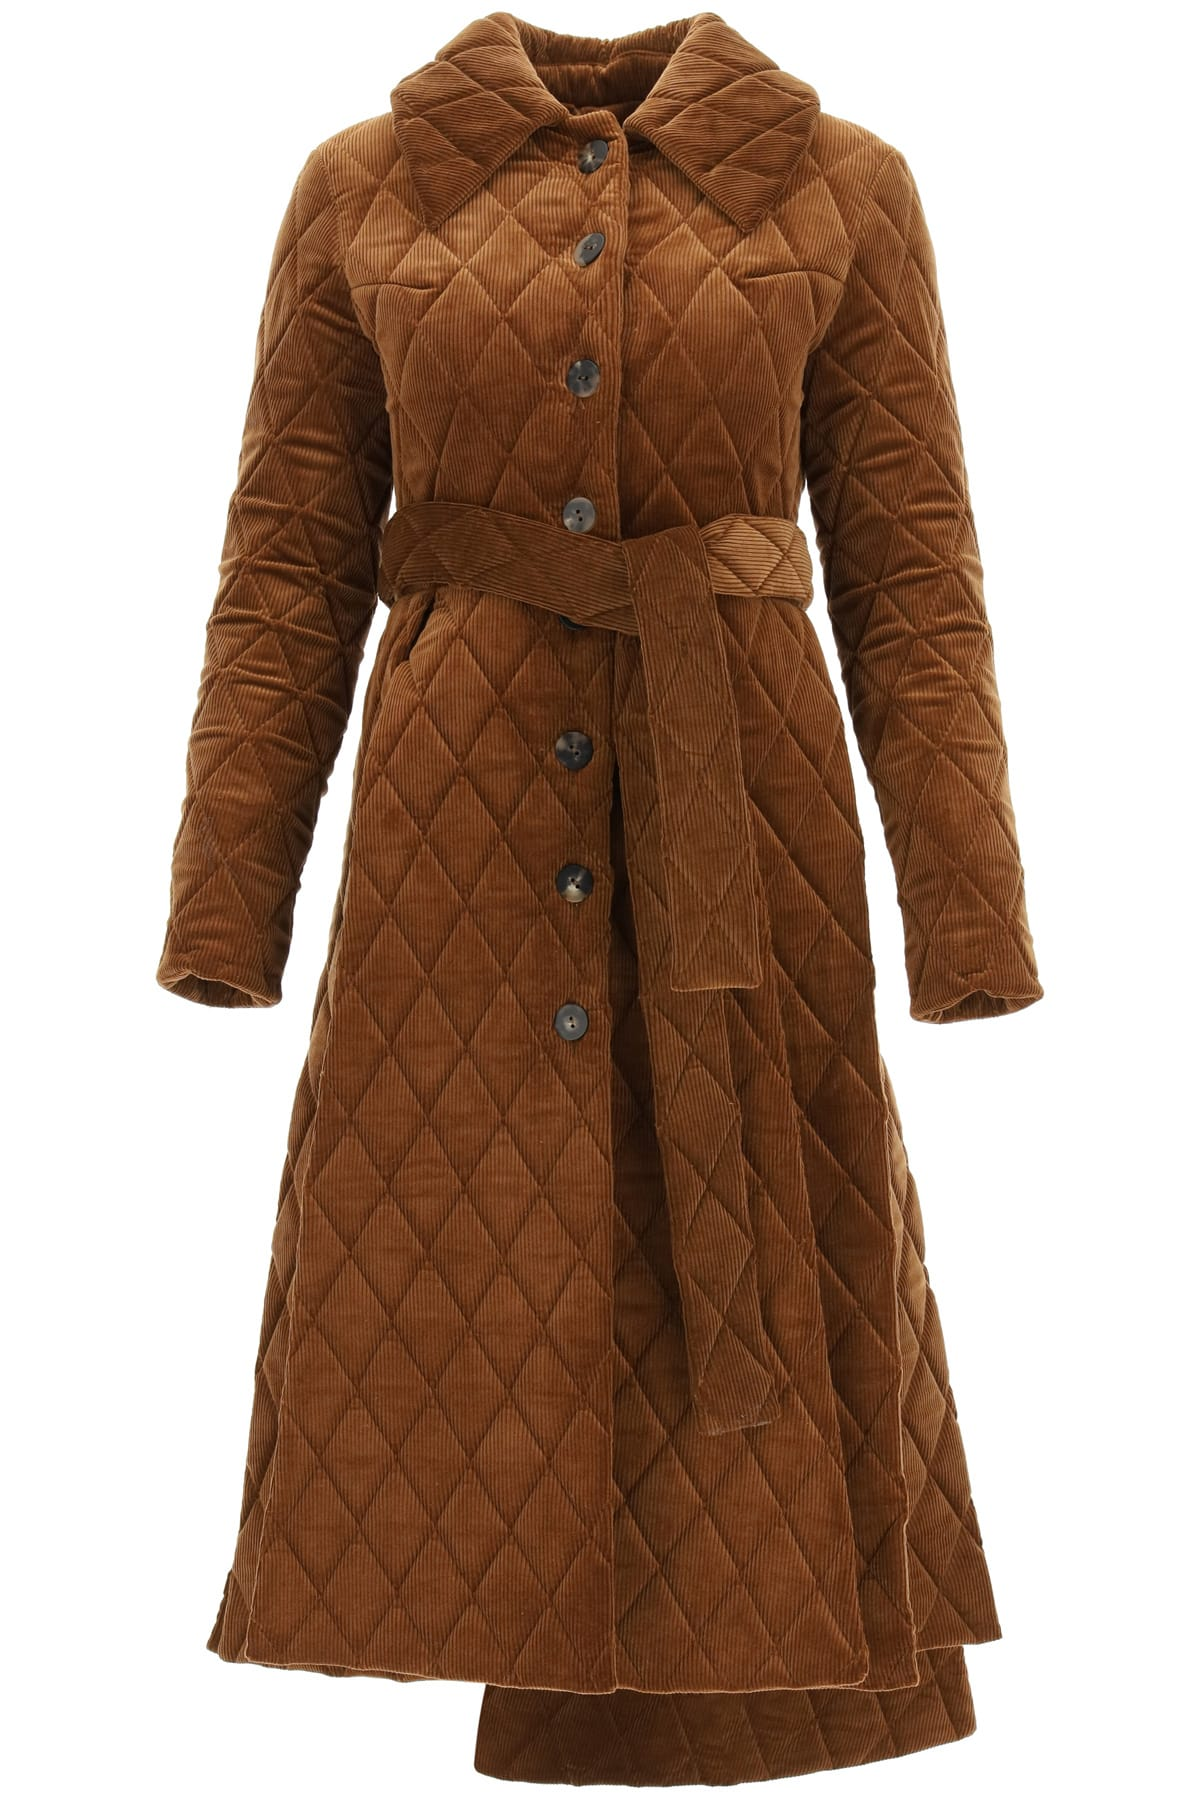 A.w.a.k.e. Clothing QUILTED CORDUROY COAT